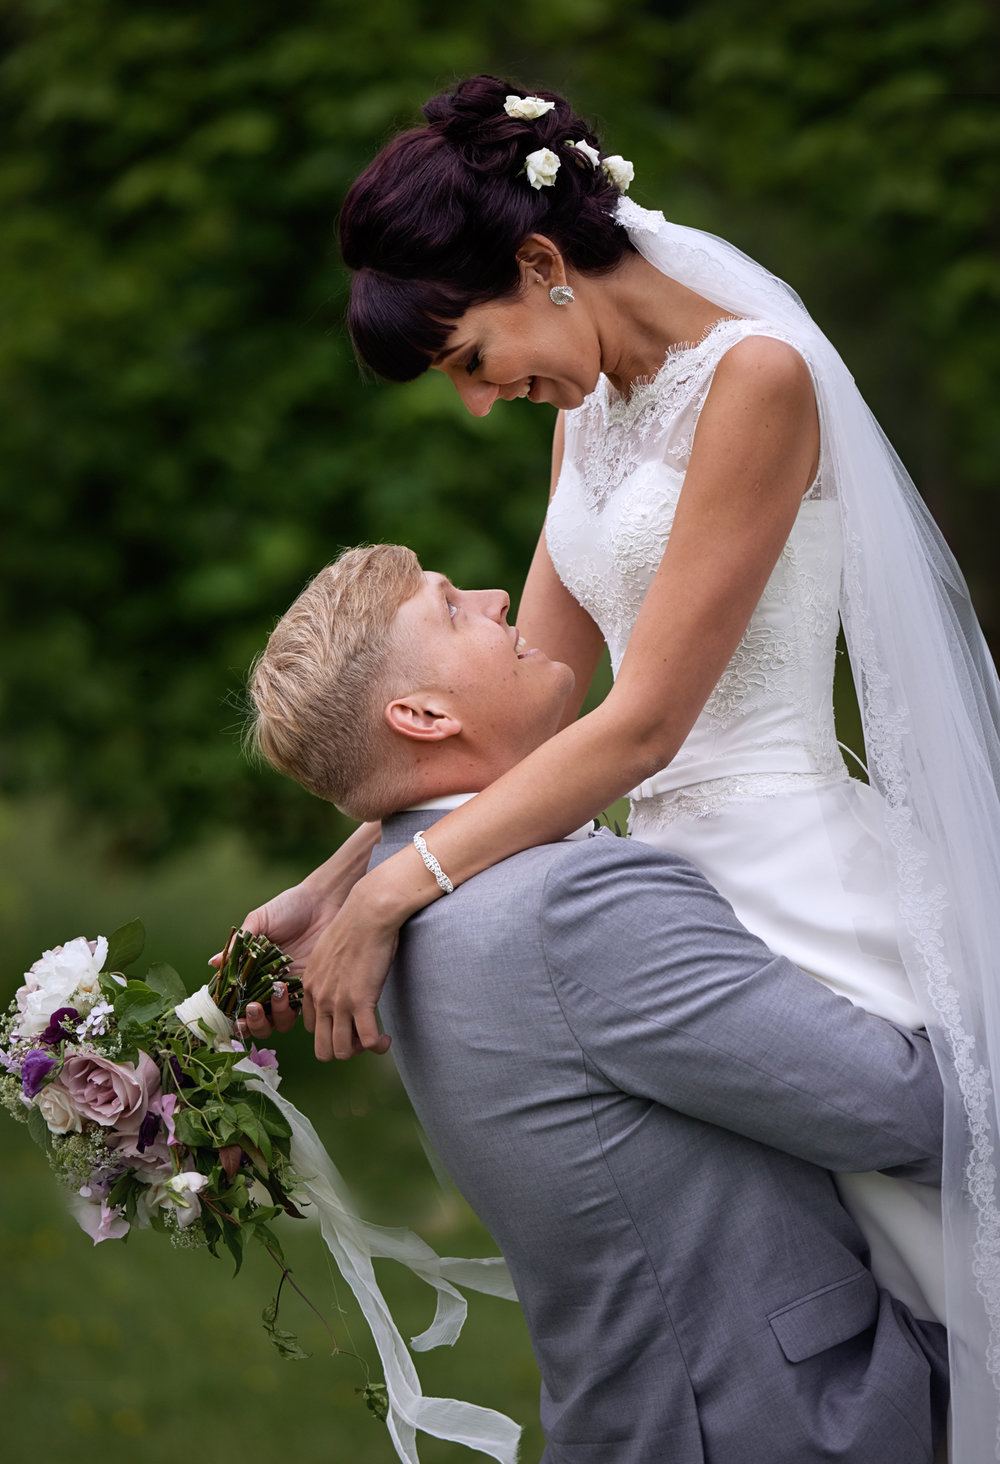 Groom holding the bride, wedding photo